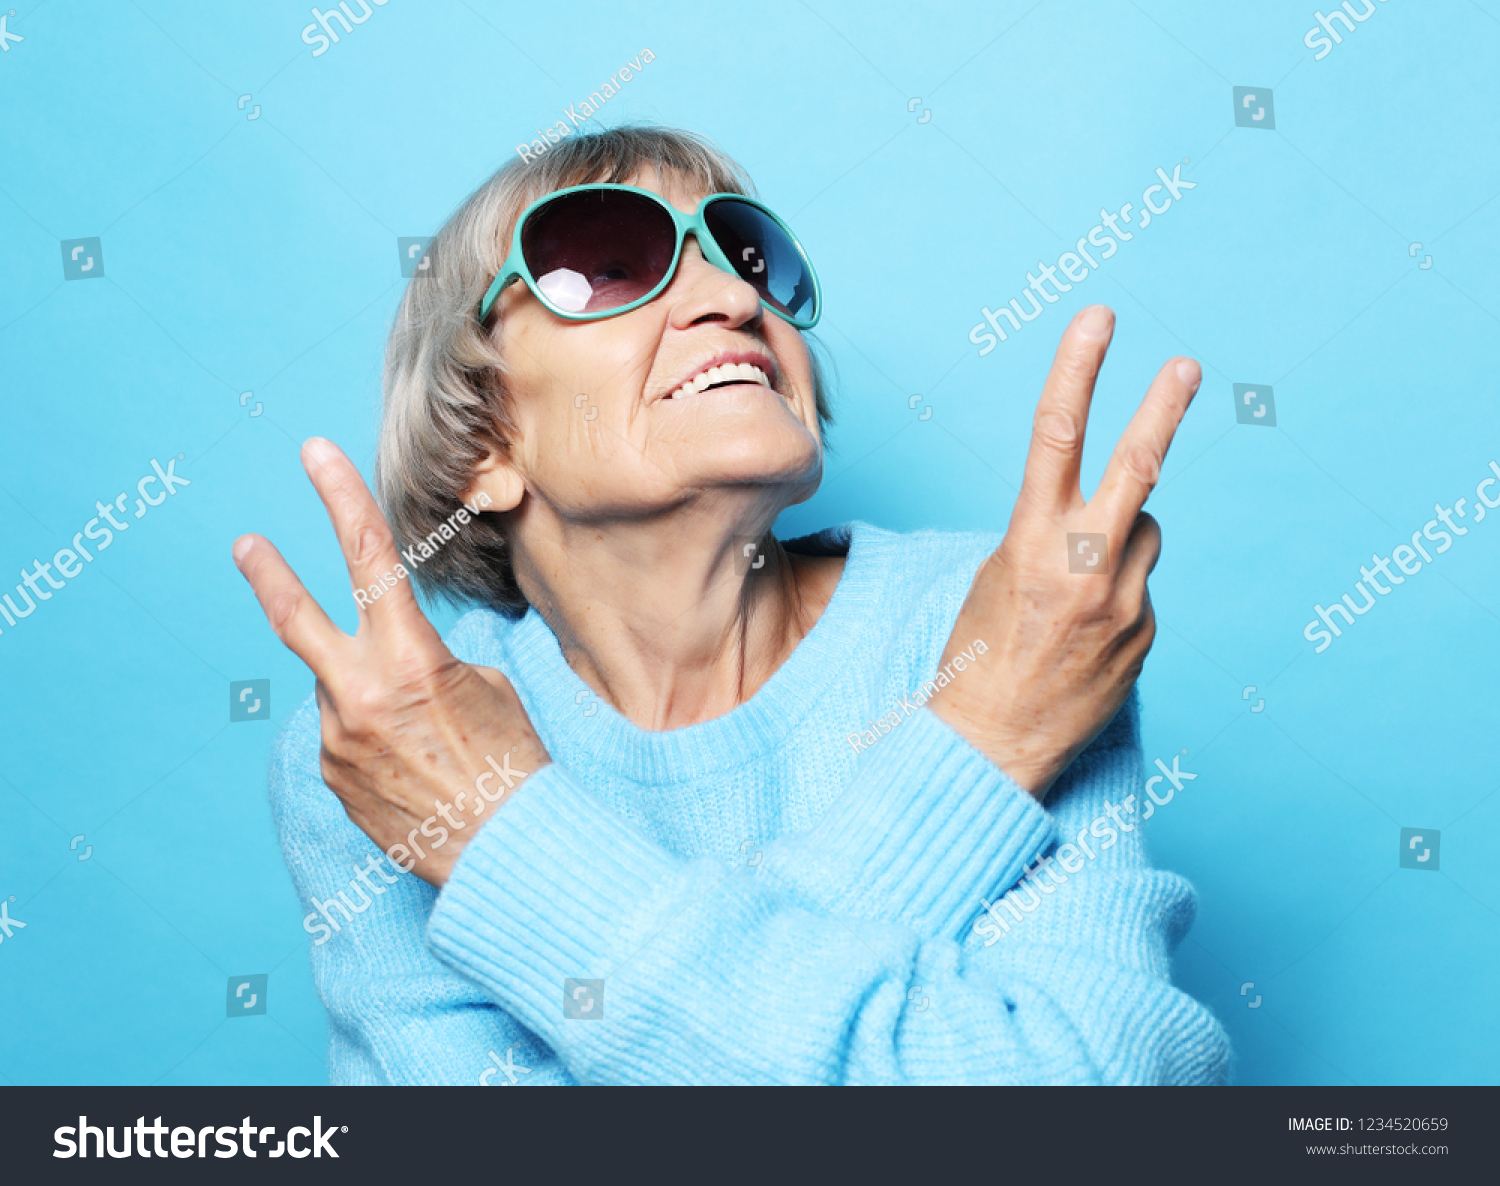 Lifestyle, emotion  and people concept: Funny old lady wearing blue sweater, hat and sunglasses showing victory sign. Isolated on blue background. #1234520659